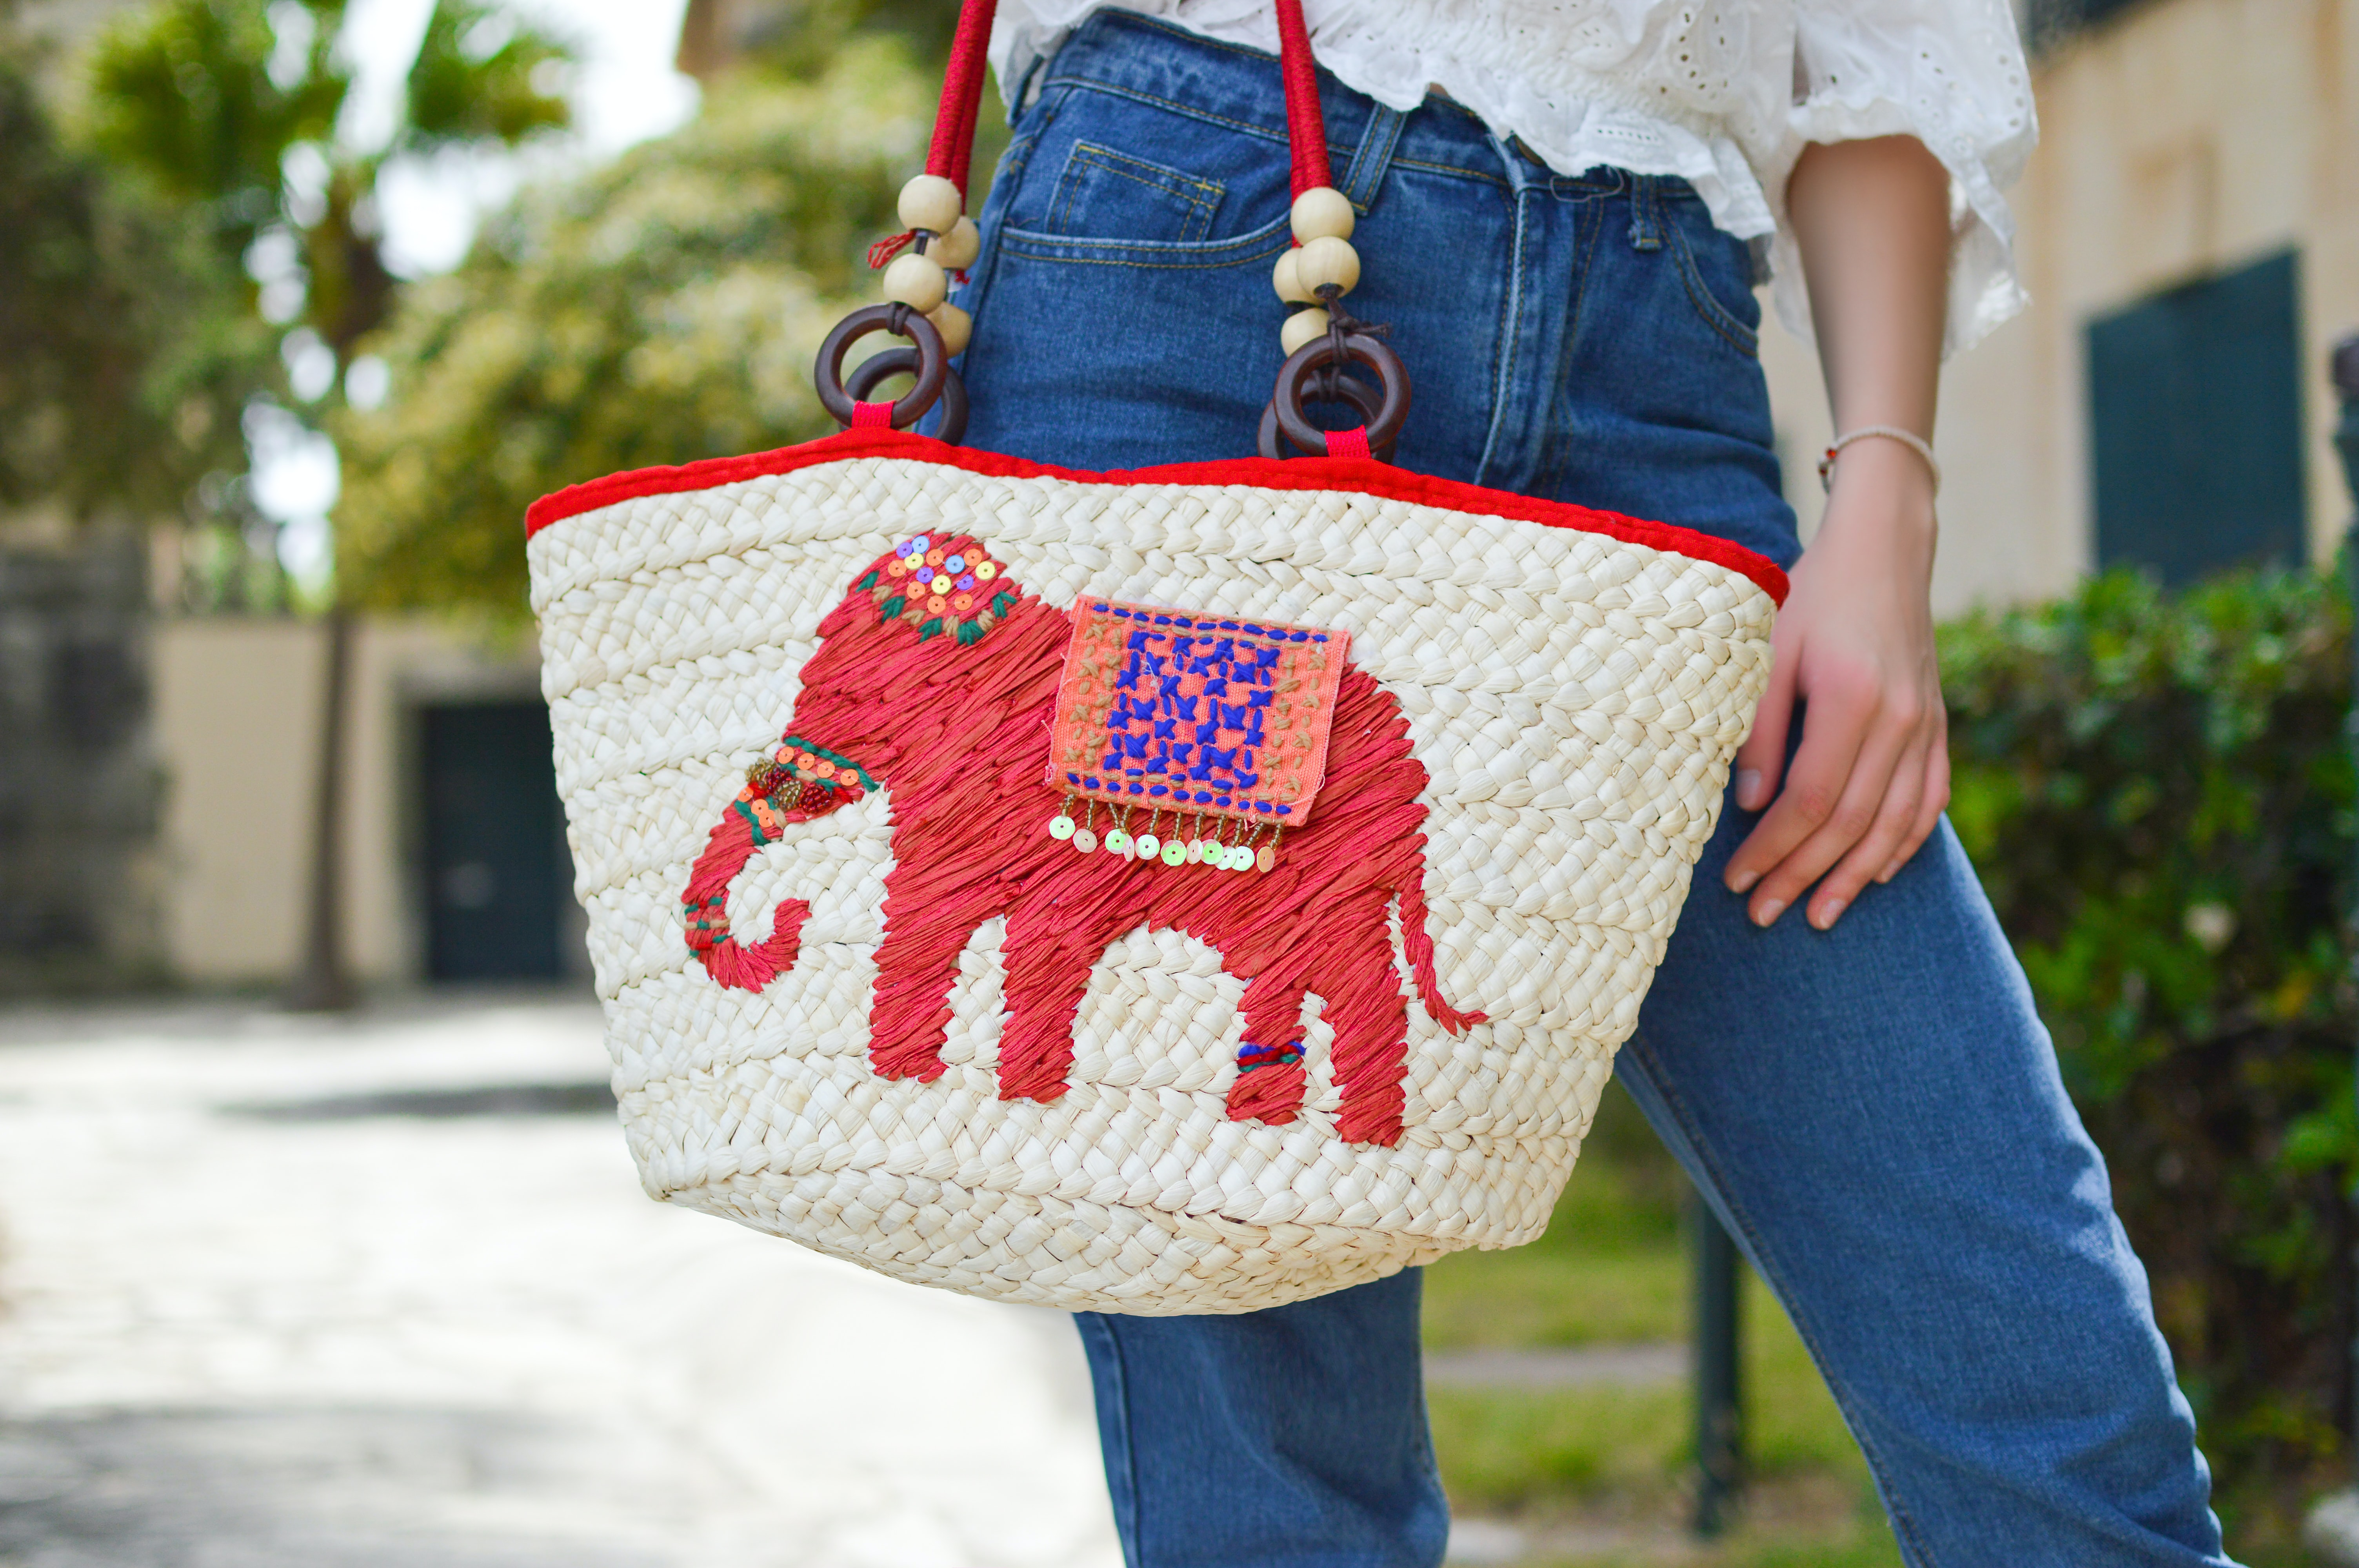 A person holds a colorful woven bag with a red embroidered elephant outdoors in Corfu